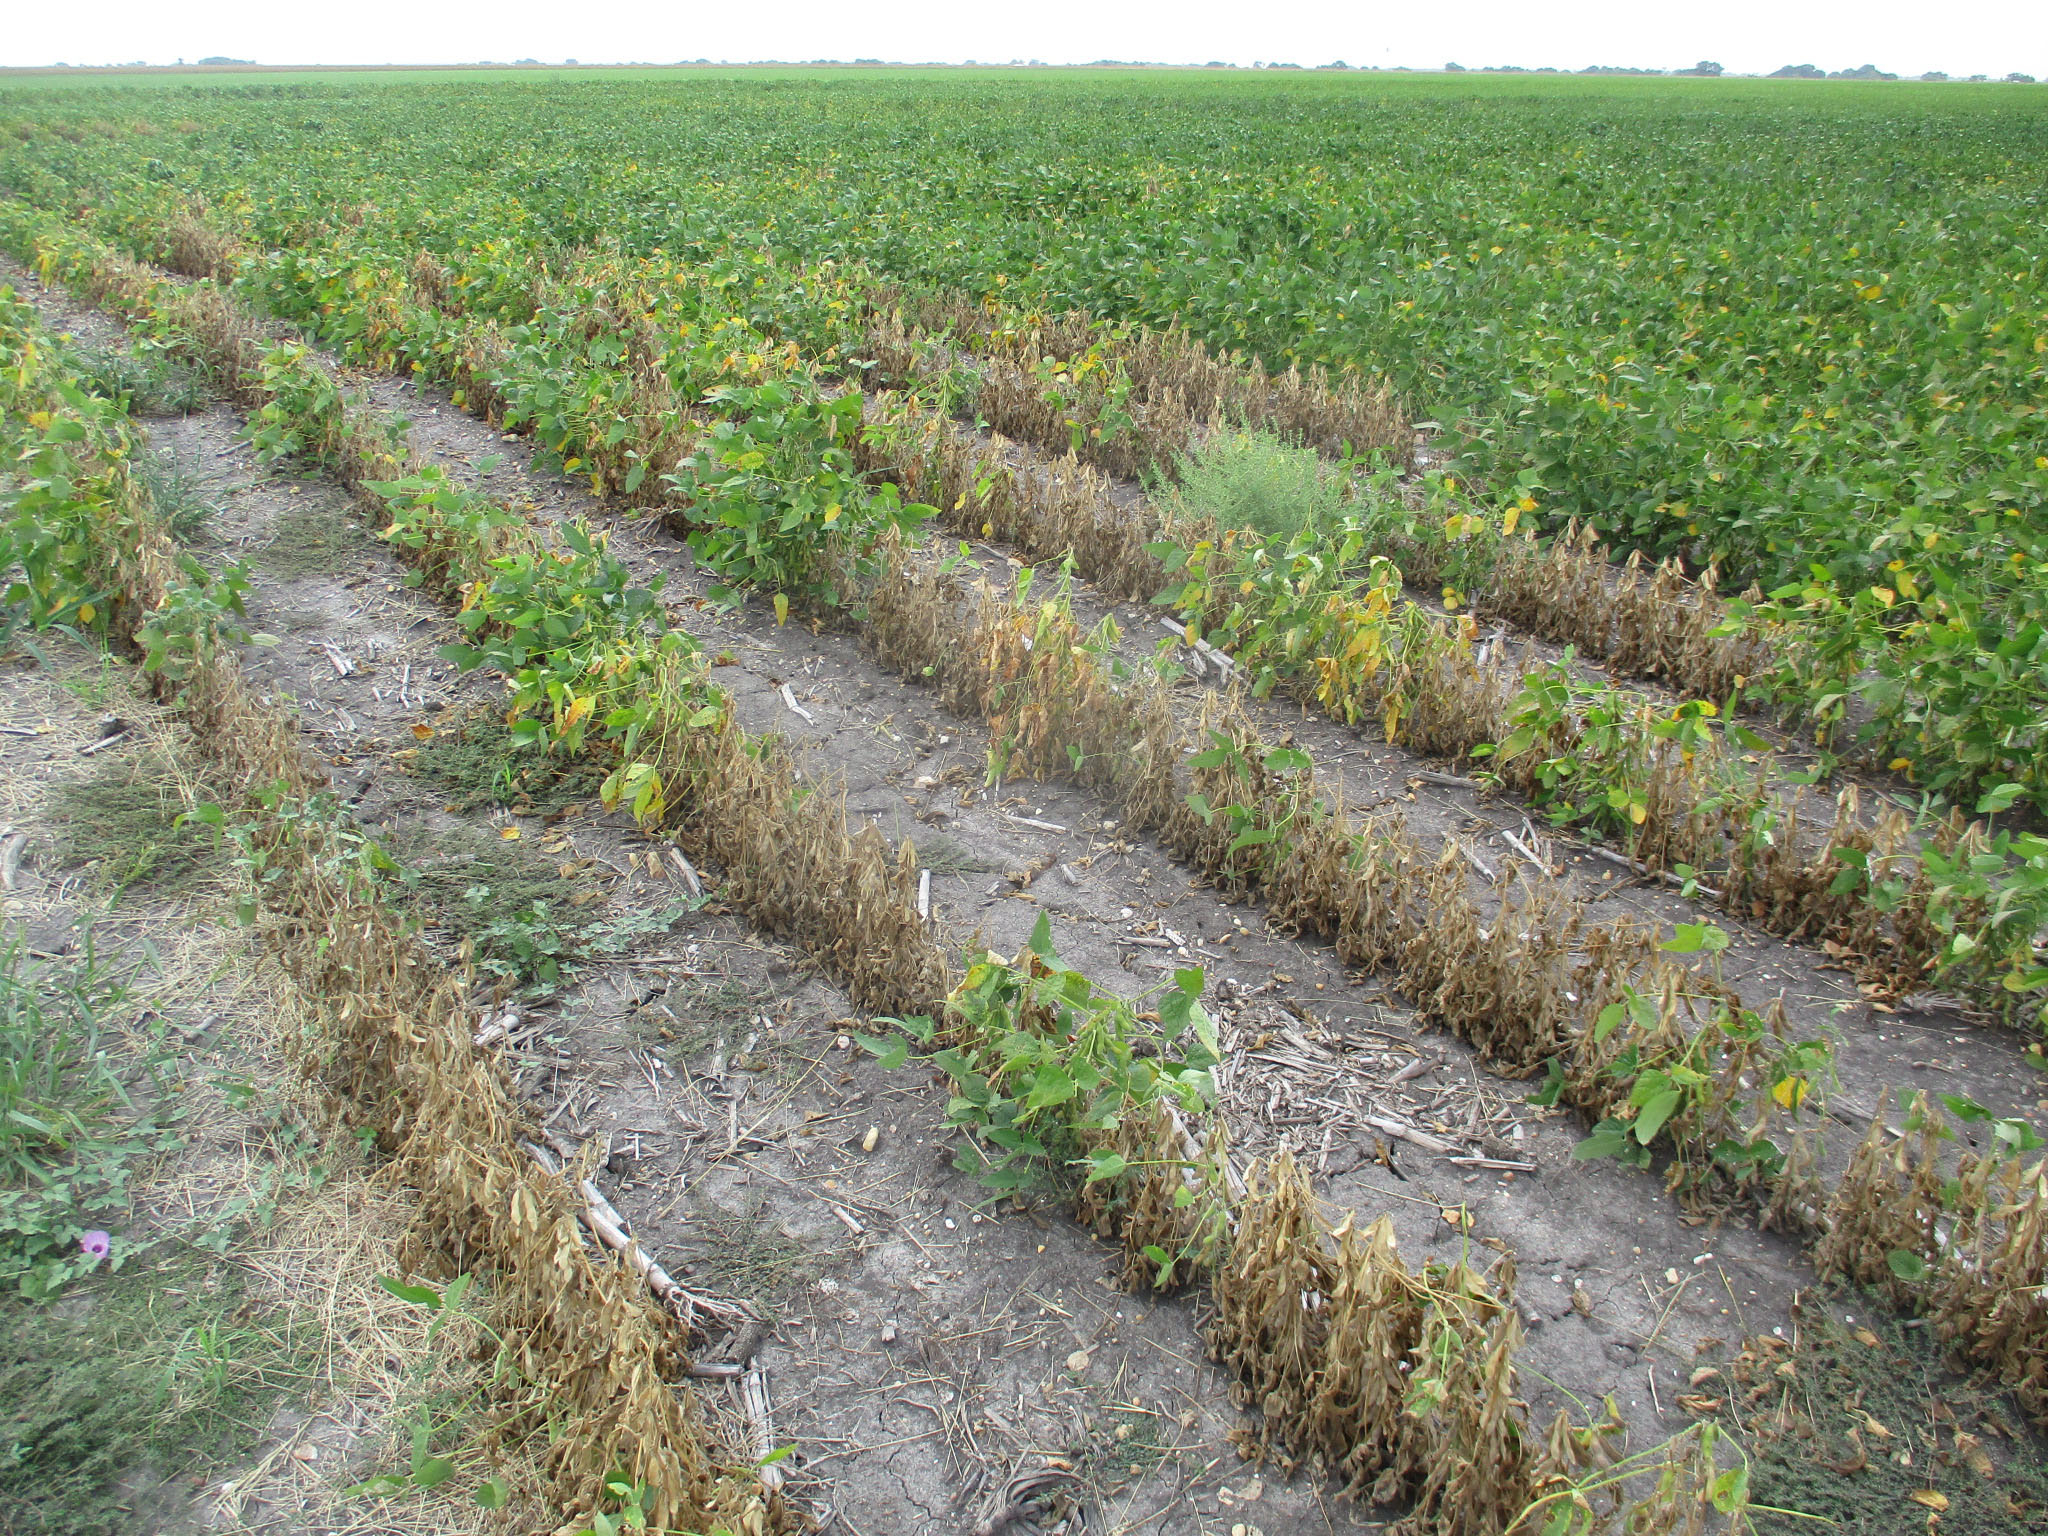 Patch of soybean plants with Phymatotrichum root rot symptoms.